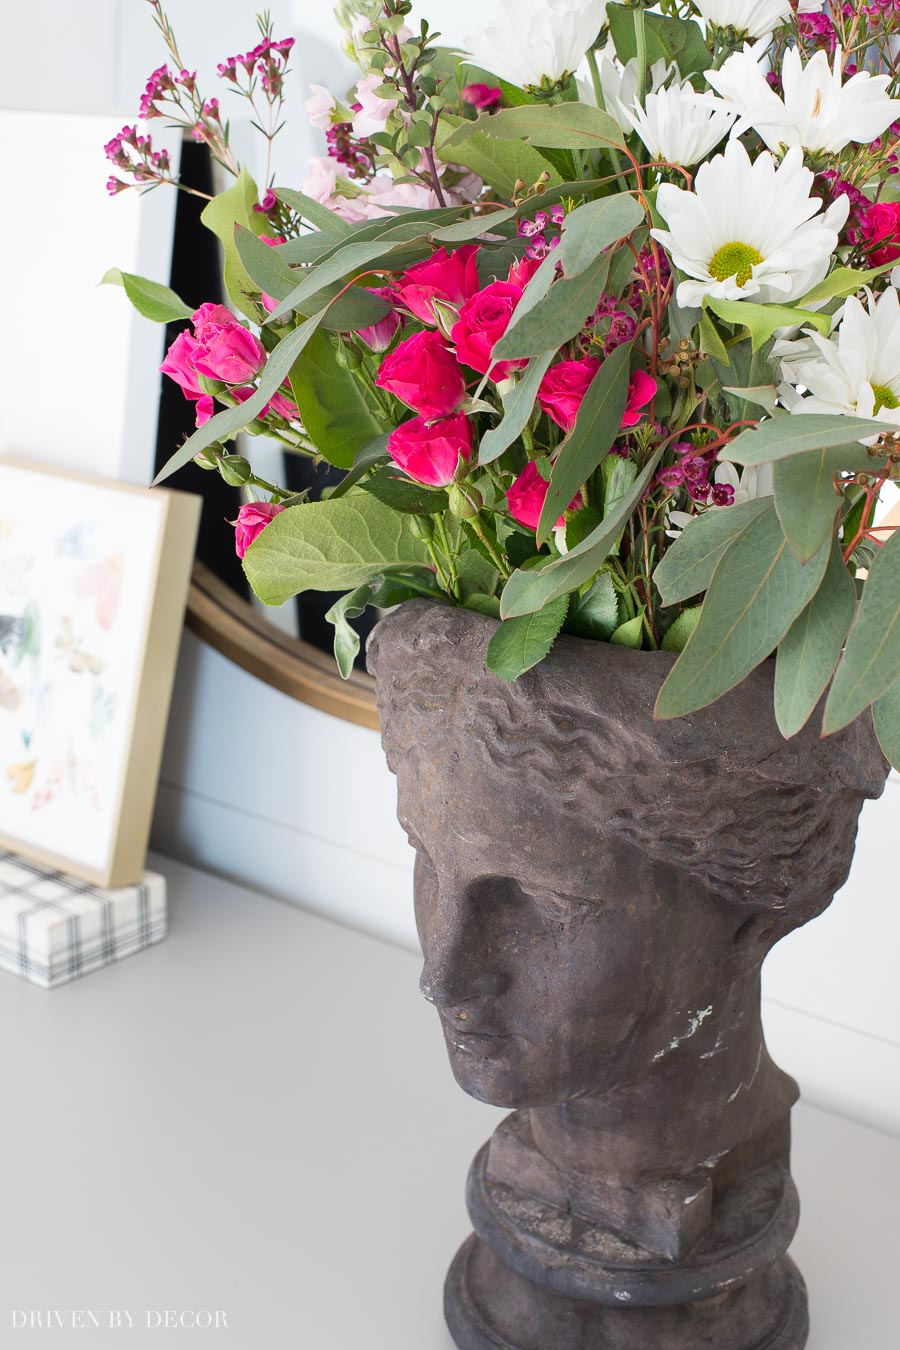 Girls head planter filled with flowers - love!